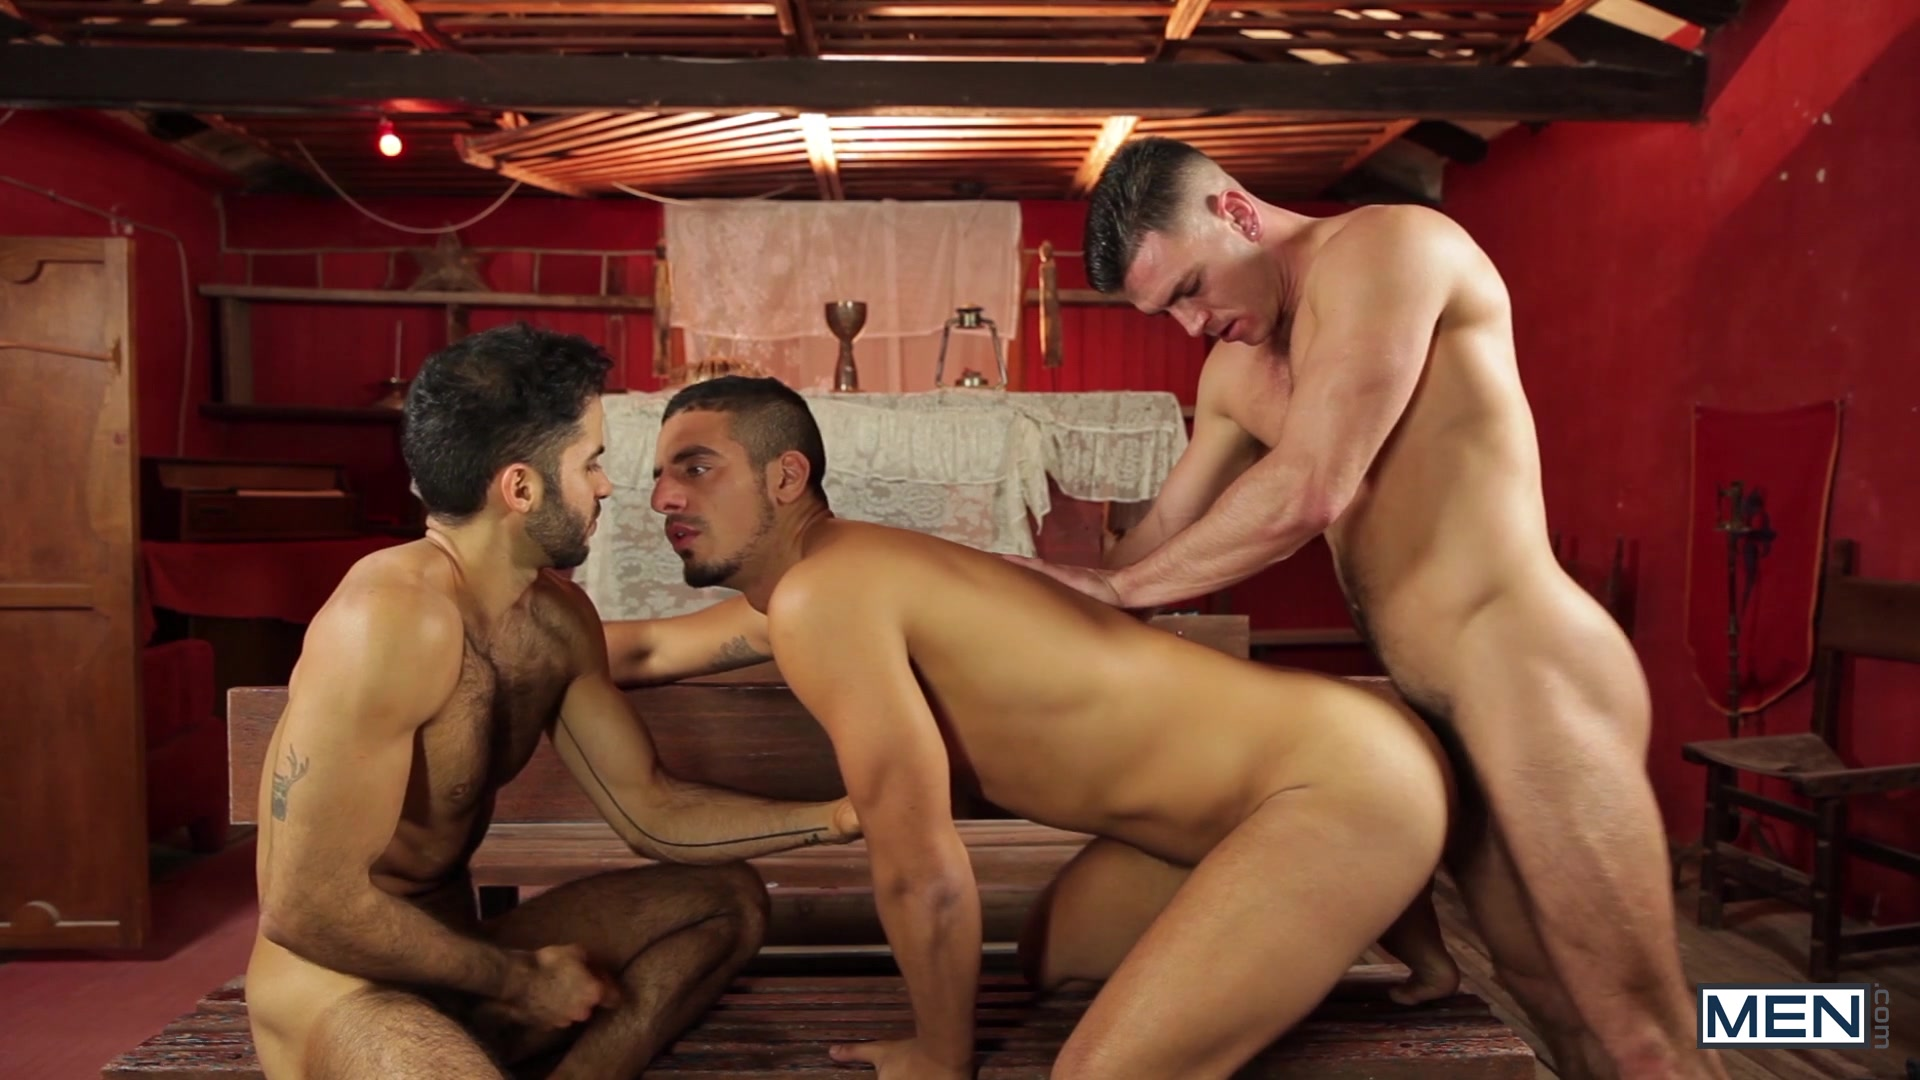 Watch Forbidden Part 3 – Paddy O'brian – Tony Milan – John Hinkel – Mouk – Men Of Uk (MEN.COM) Gay Porn Tube Videos Gifs And Free XXX HD Sex Movies Photos Online